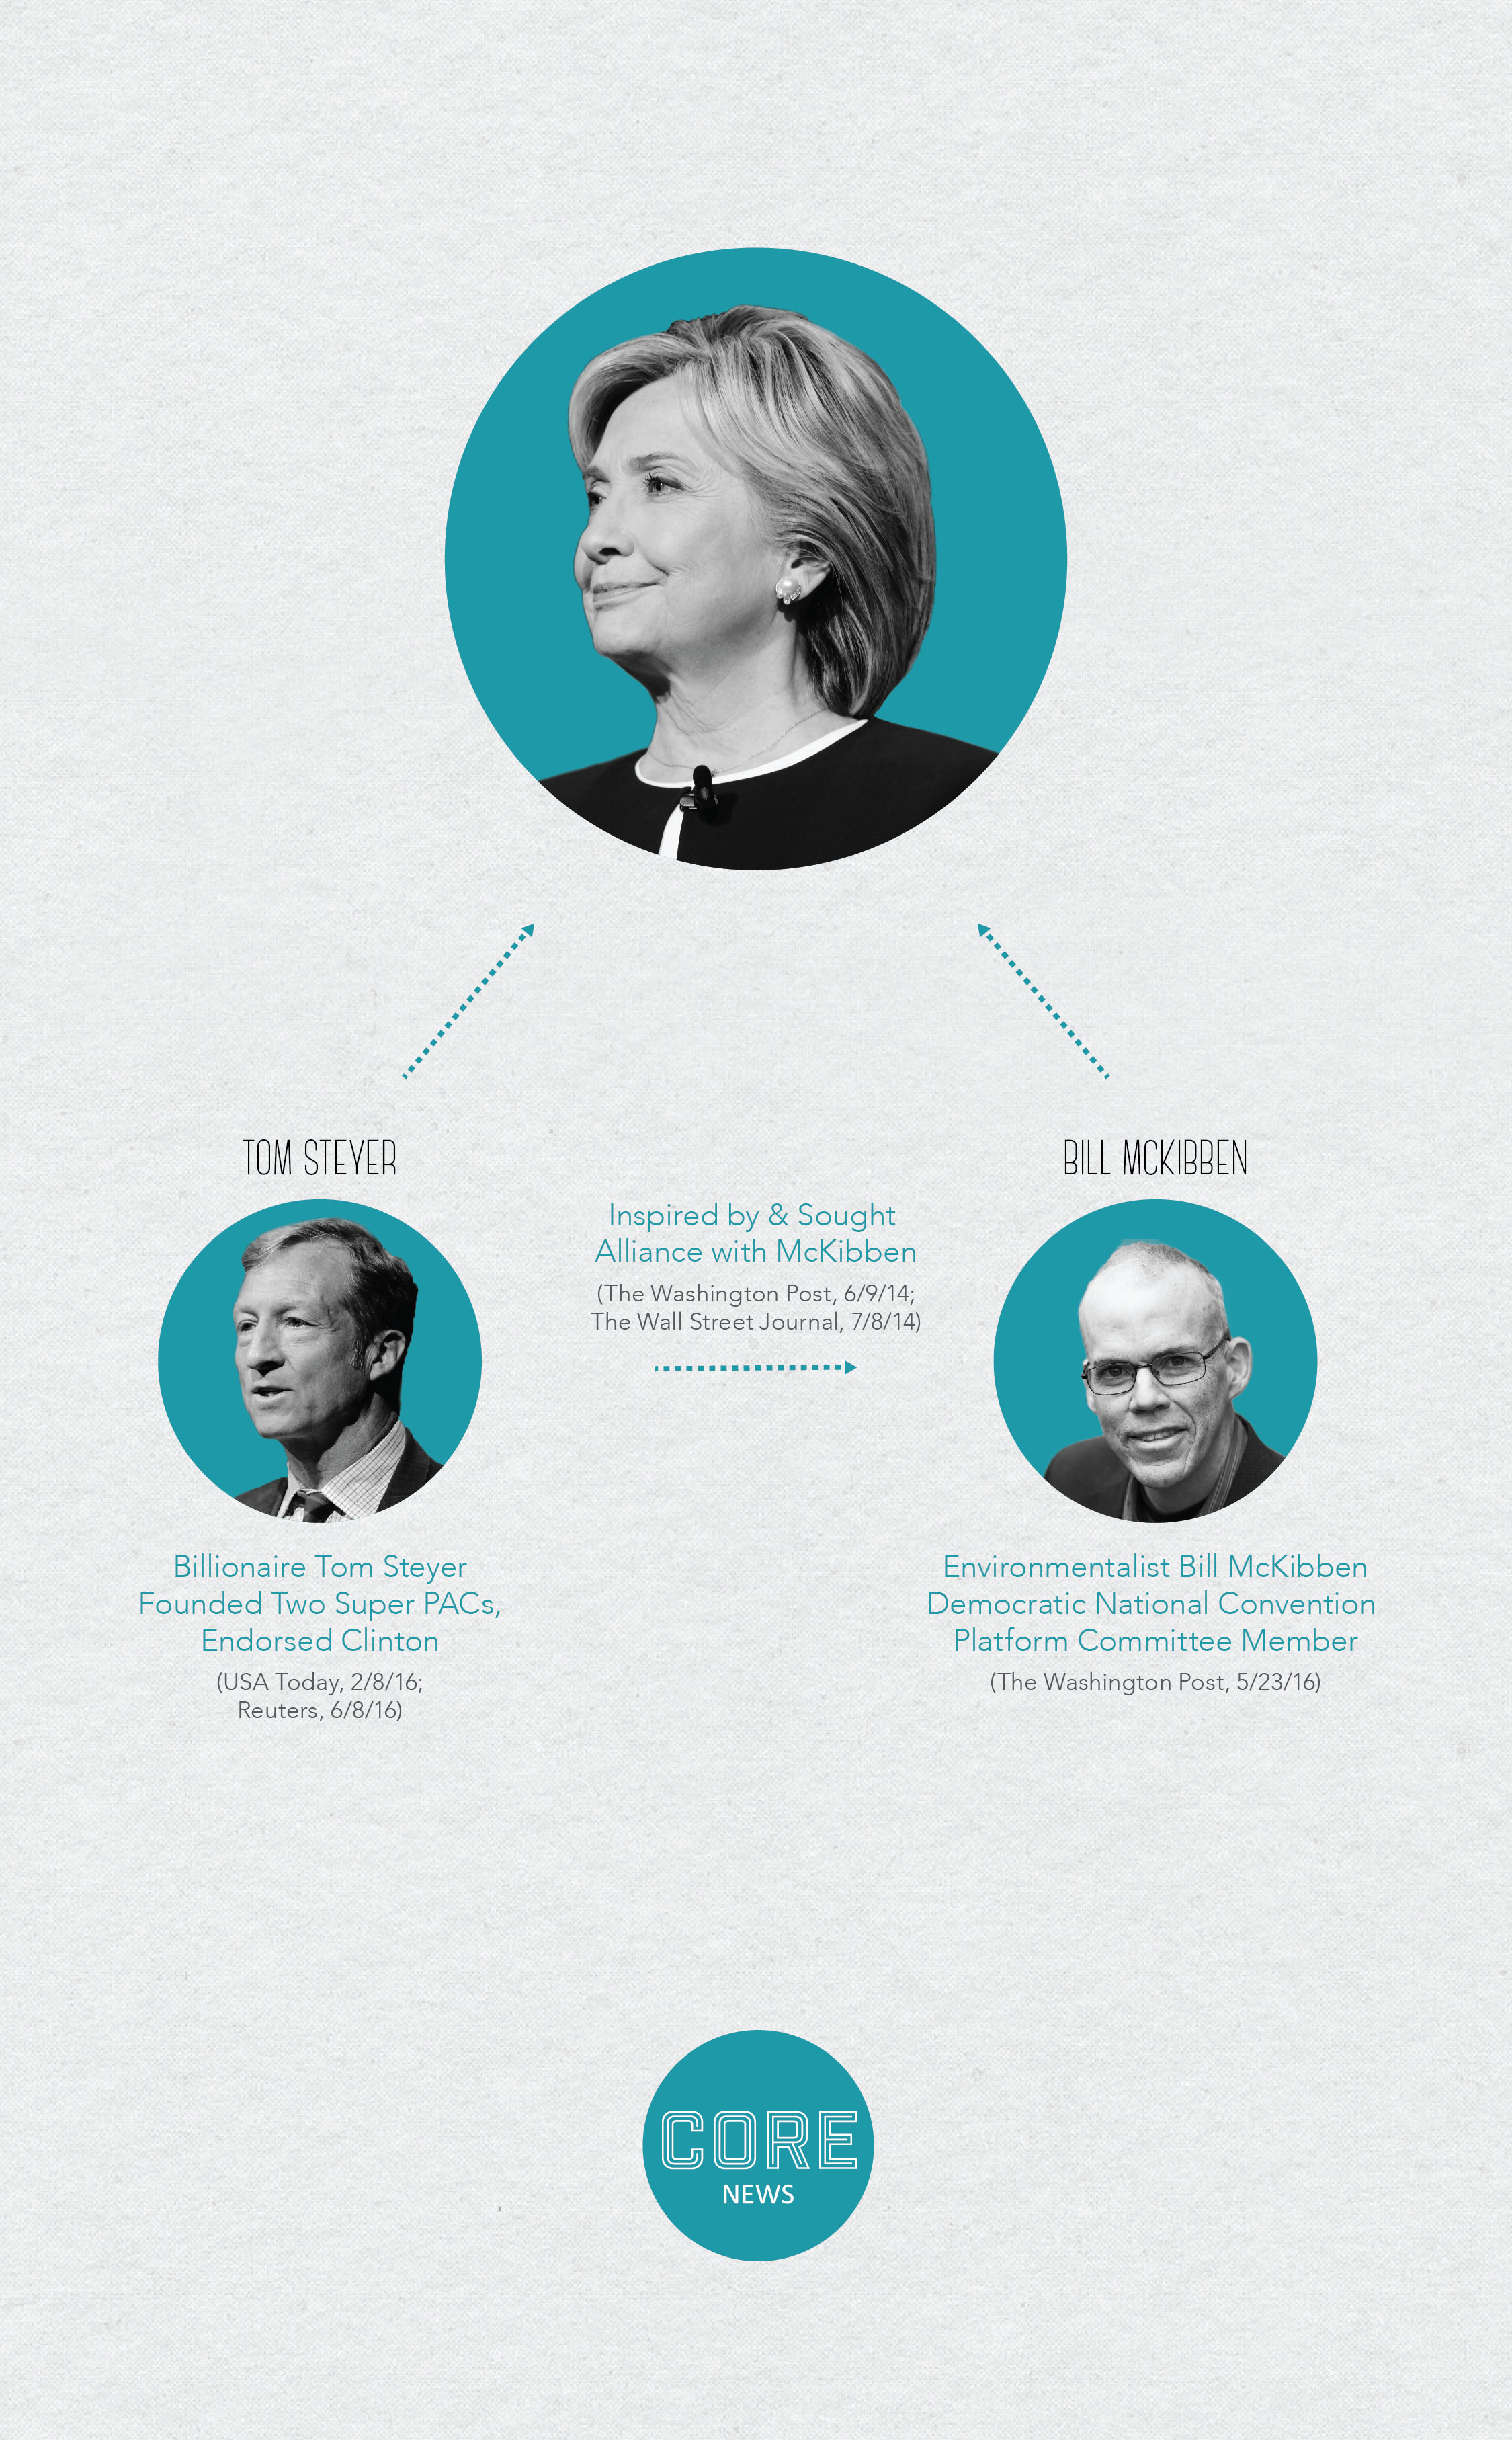 An infographic illustrating Hillary Clinton's ties to prominent environmentalists Tom Steyer and Bill McKibben.